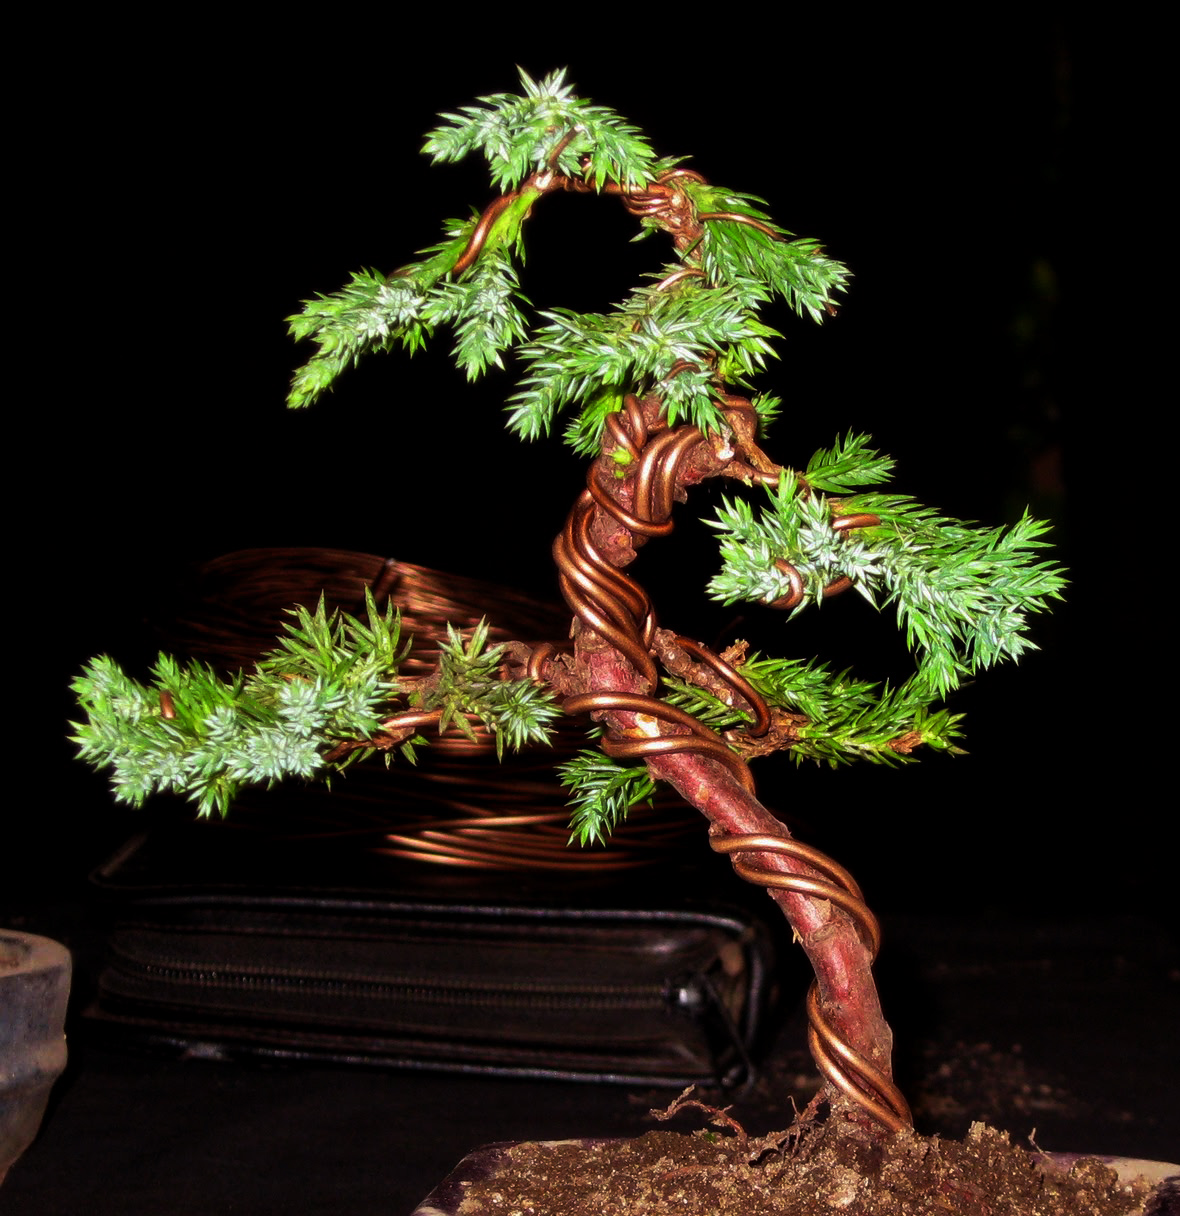 Wiring Bonsai Video Quick Start Guide Of Diagram Techniques Grow A The Best Guides To Your Own Homemade Silhouette